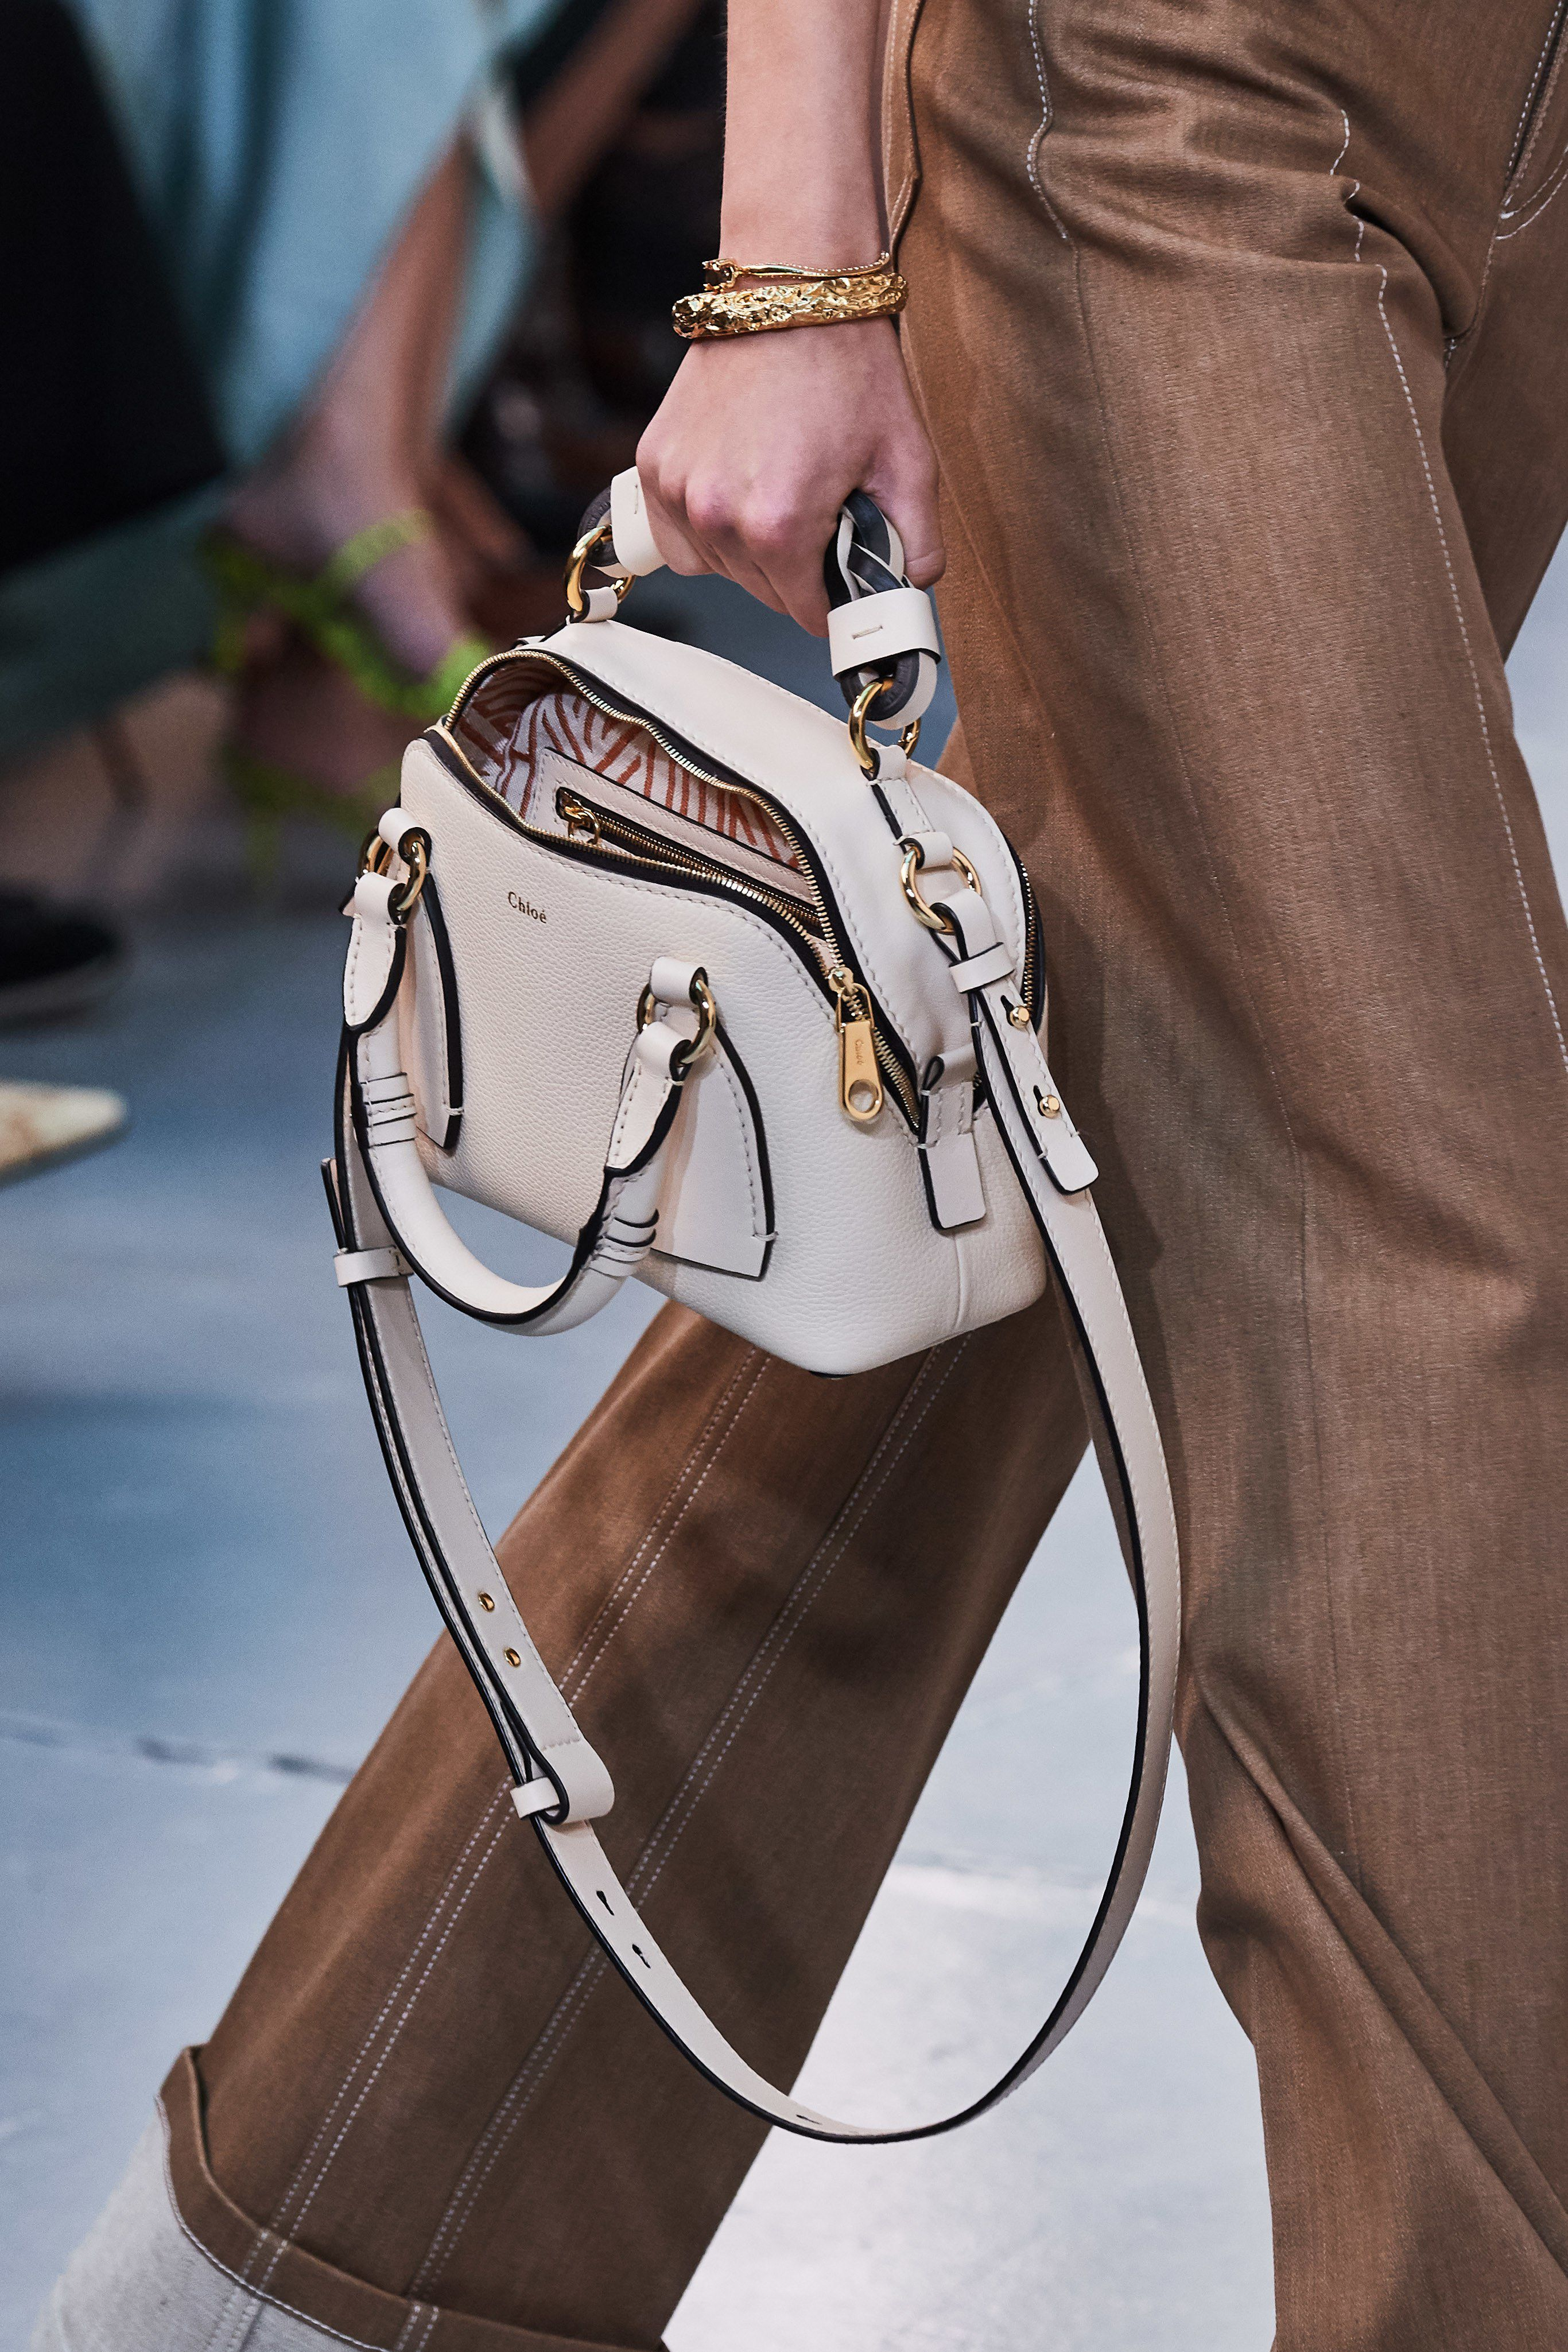 Chloé Spring 2020 Ready to Wear Fashion Show Details: See